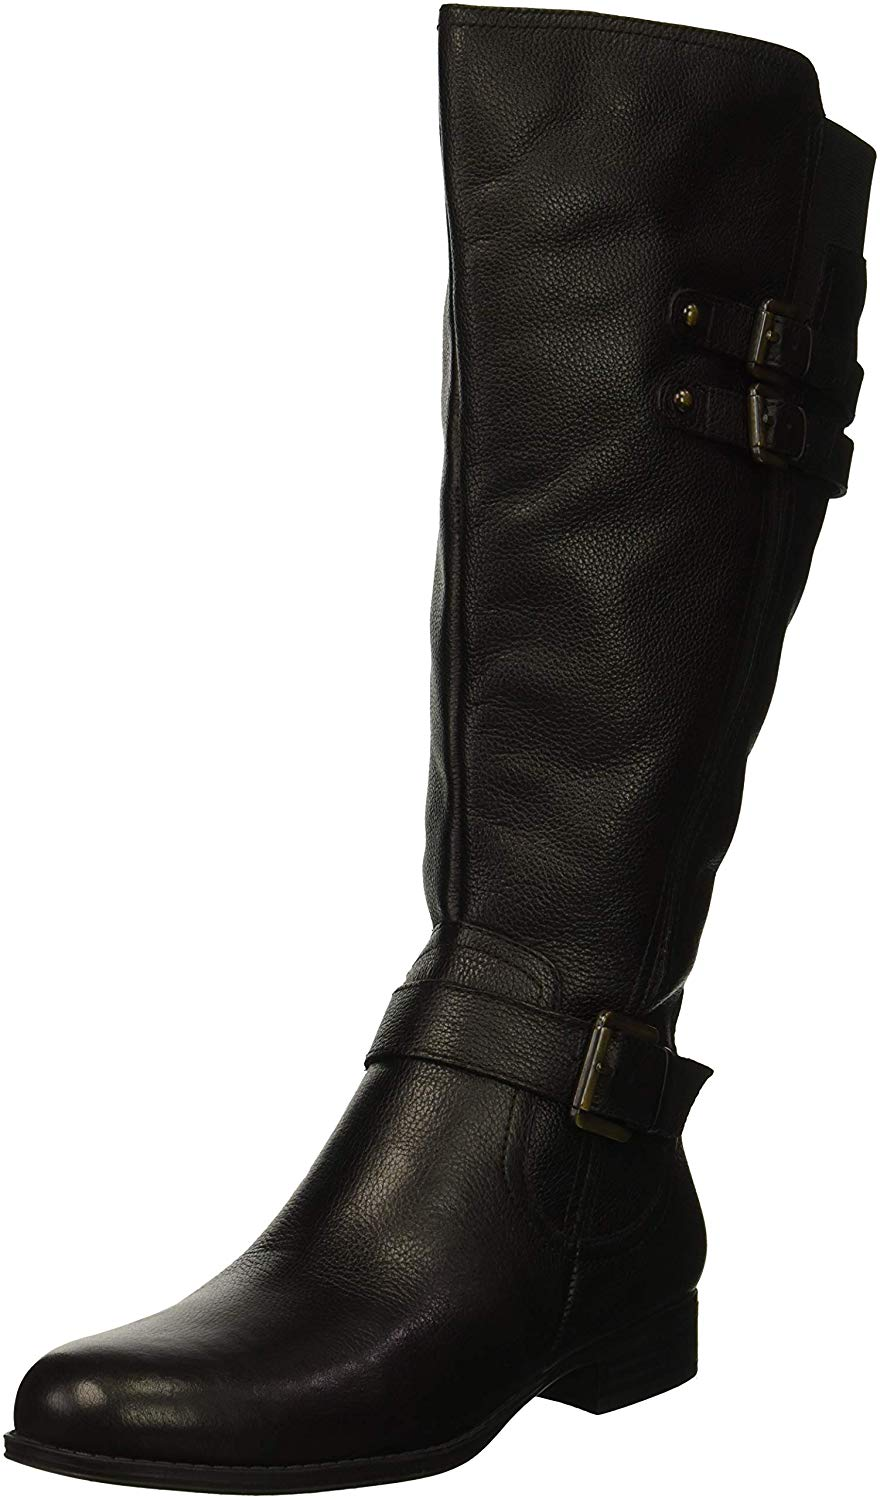 Naturalizer-Womens-Jessie-Closed-Toe-Over-Knee-Fashion-Boots-Black-Wc-Size-5-0